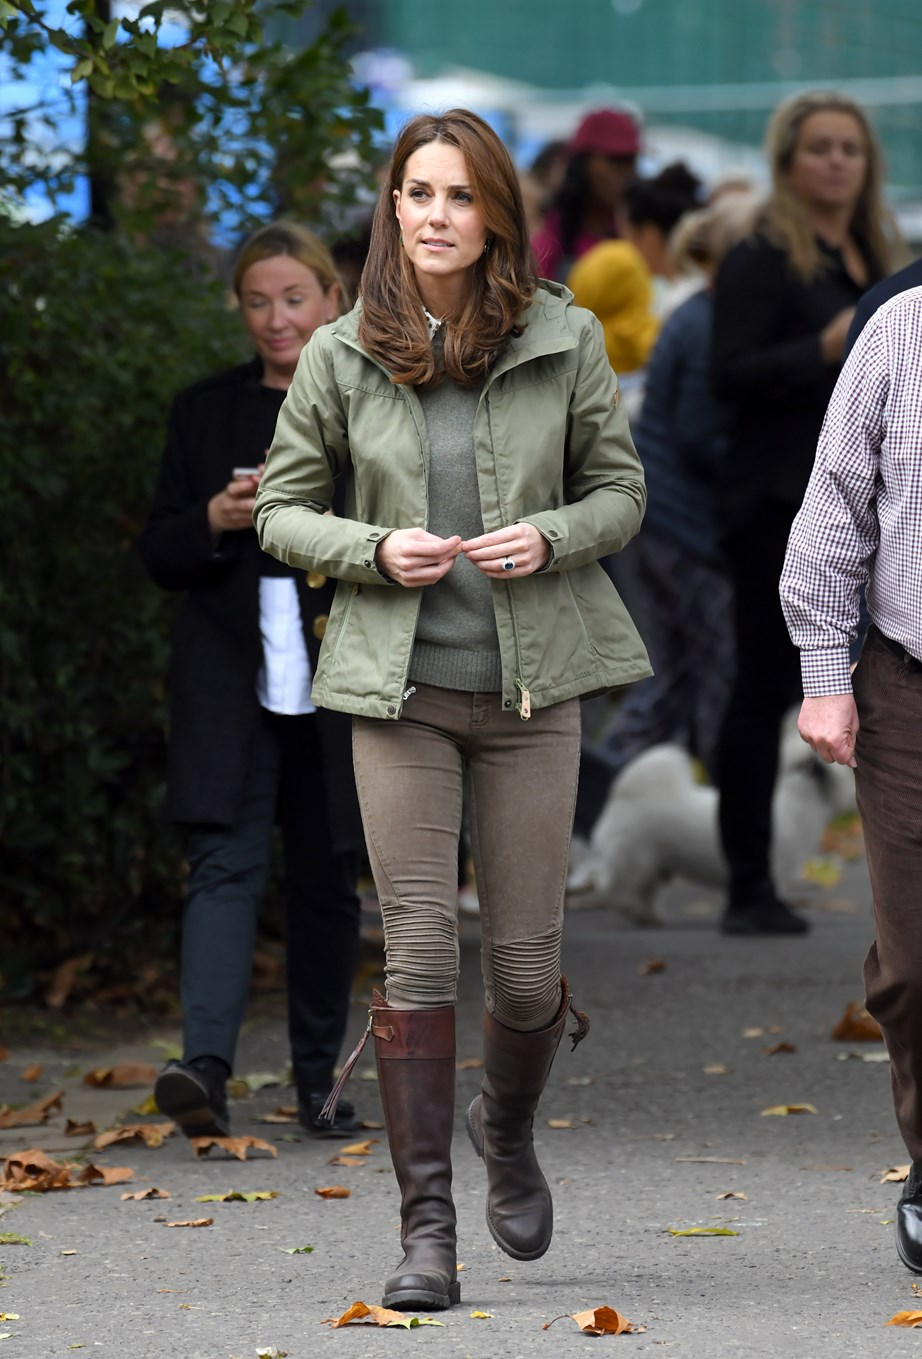 The mum-of-three wore a chic outdoor ensemble.